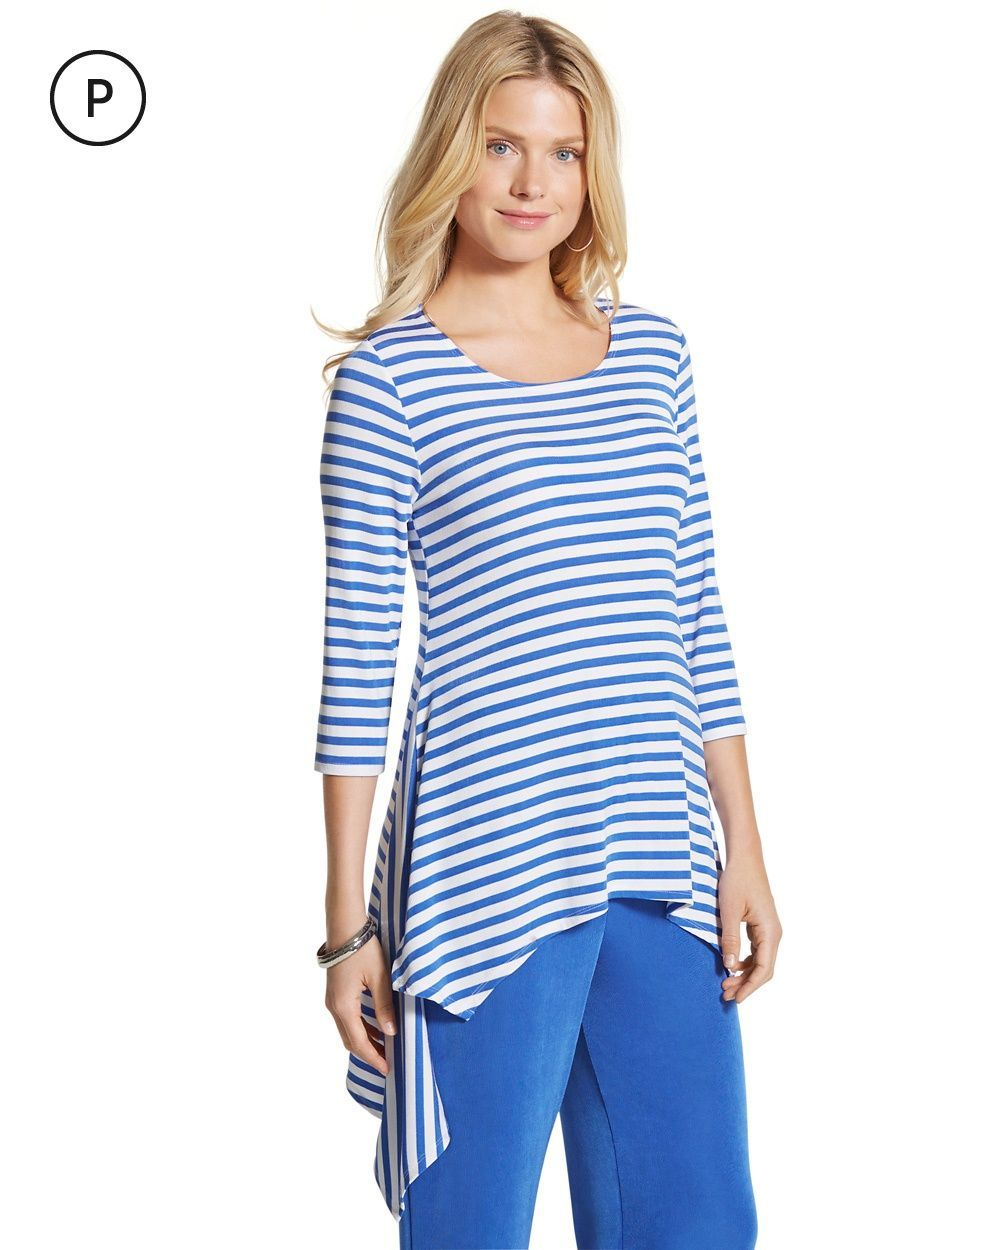 83473403b2 Shop Travel Clothes for Women - Travelers. Chico s Women s Petite Travelers  Classic Blue-Striped Top